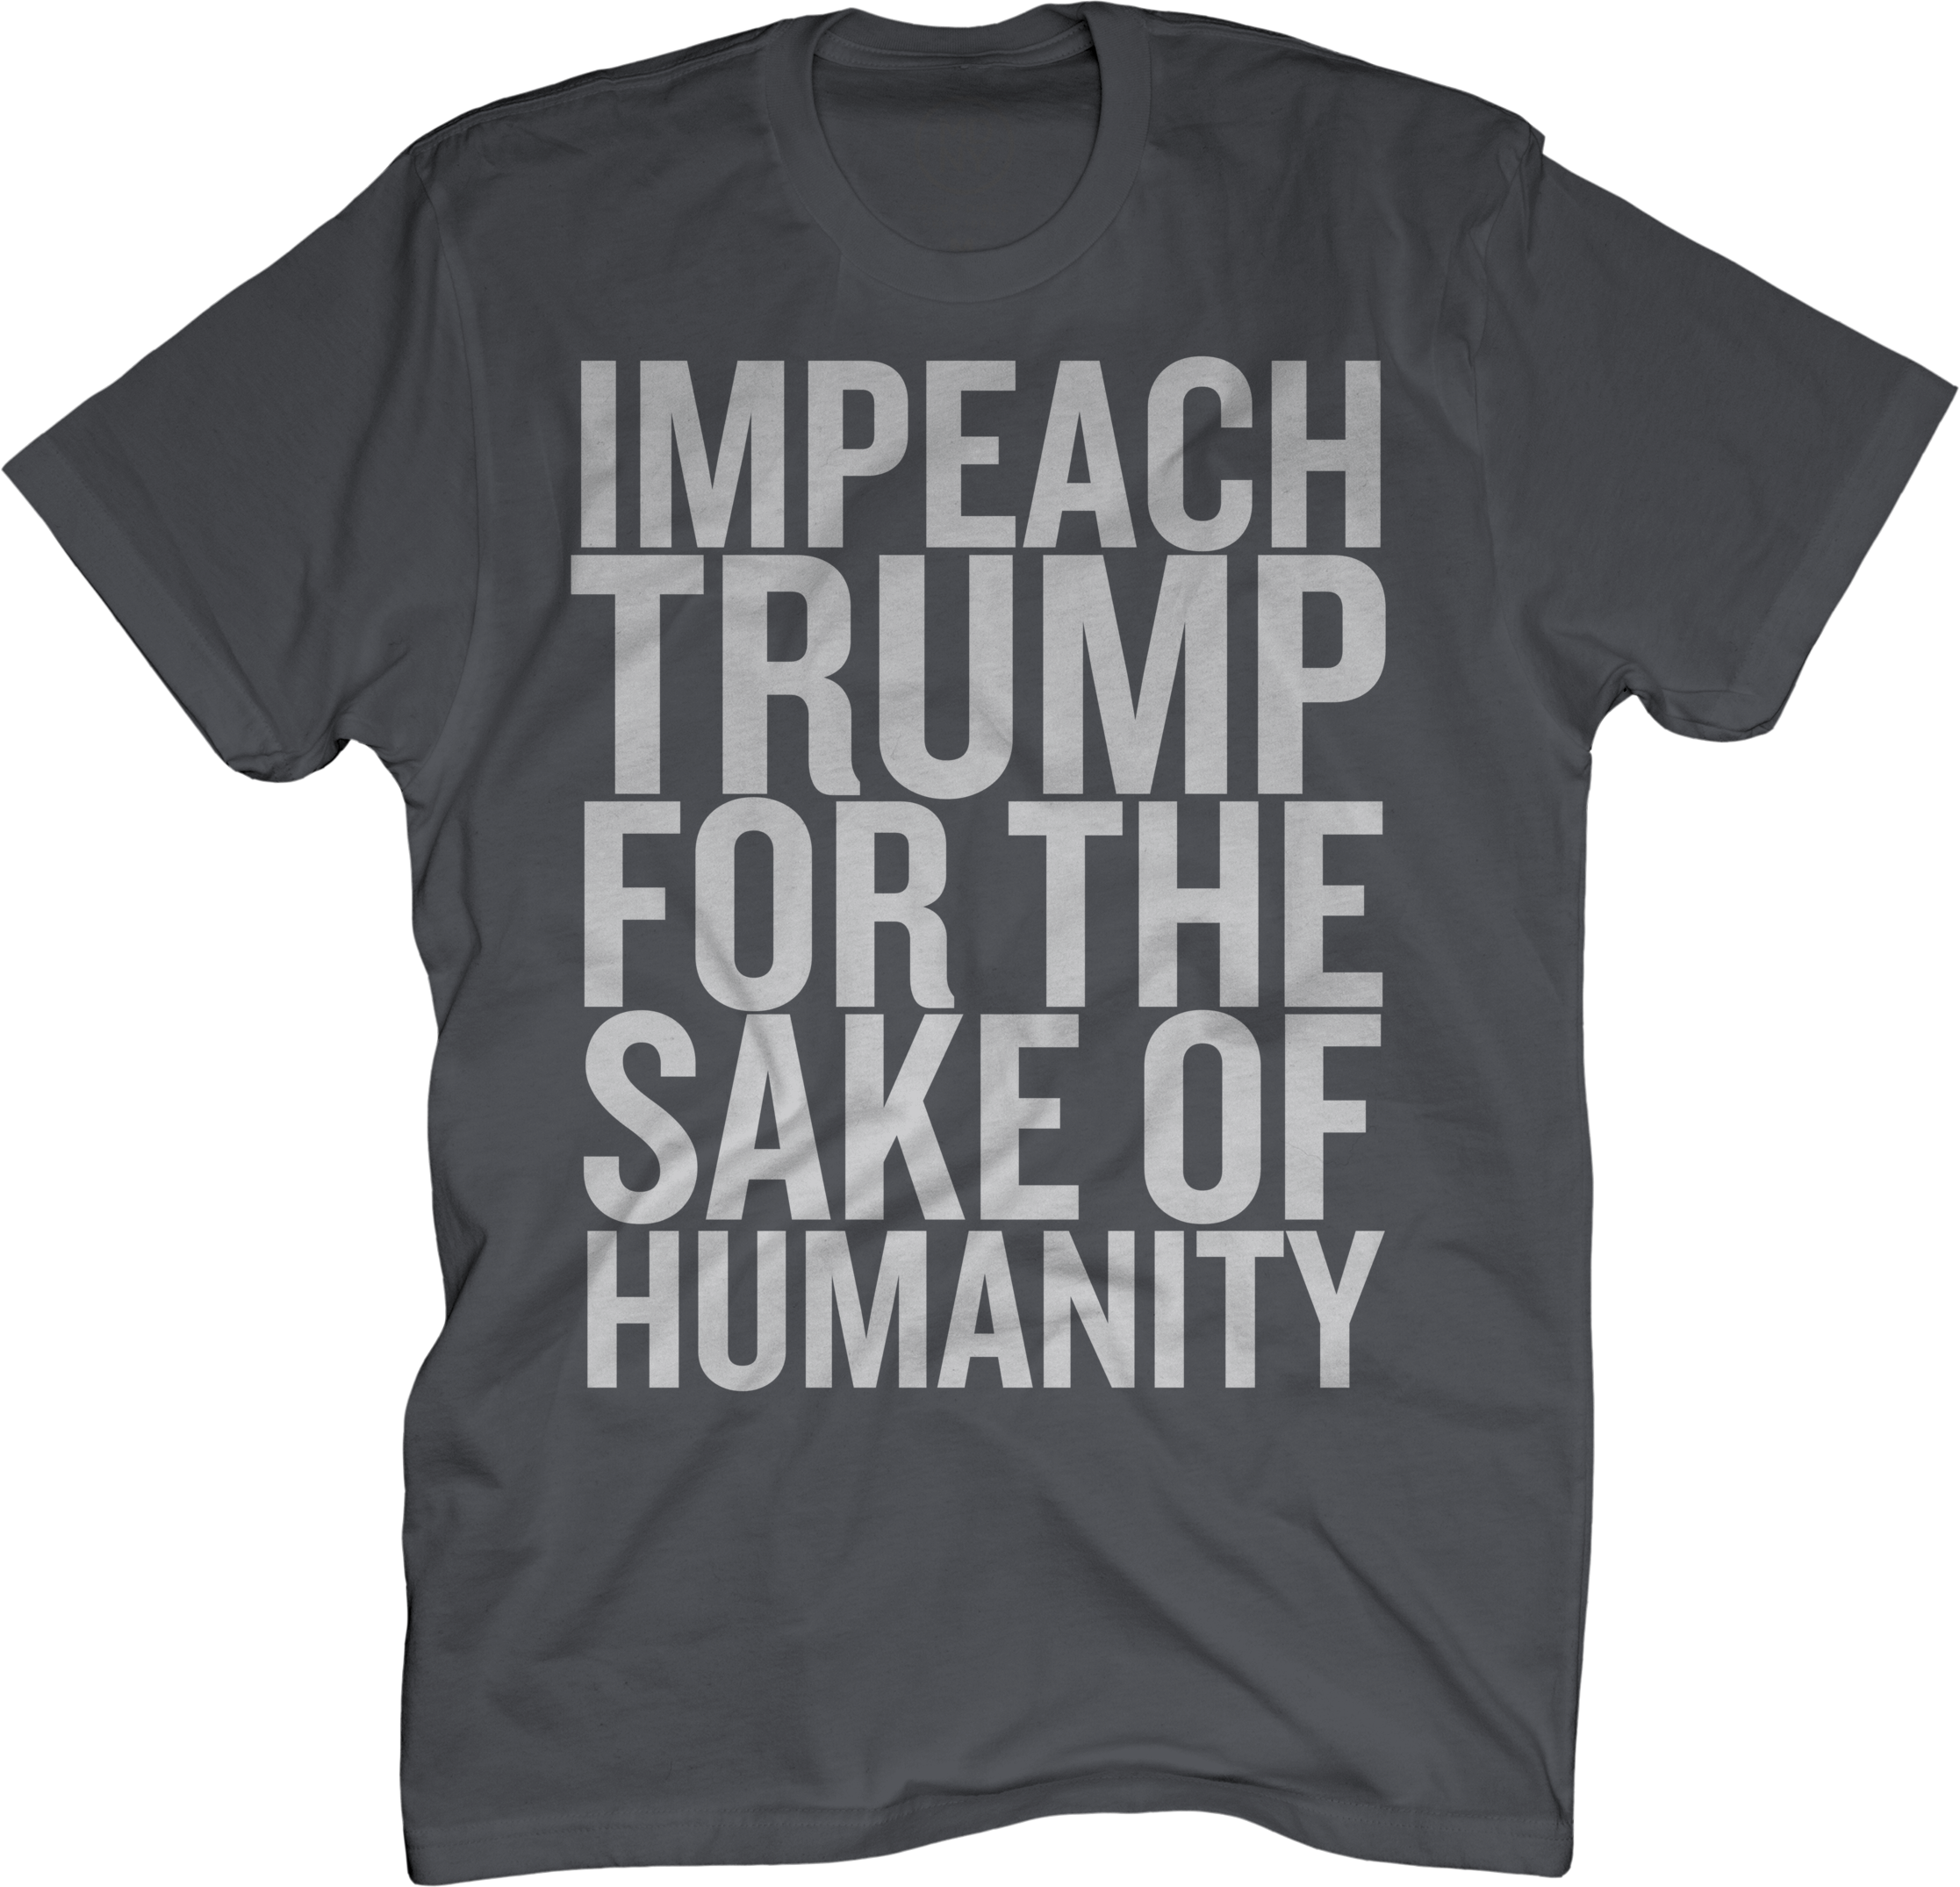 IMPEACH TRUMP gray tee (Mens sizing)